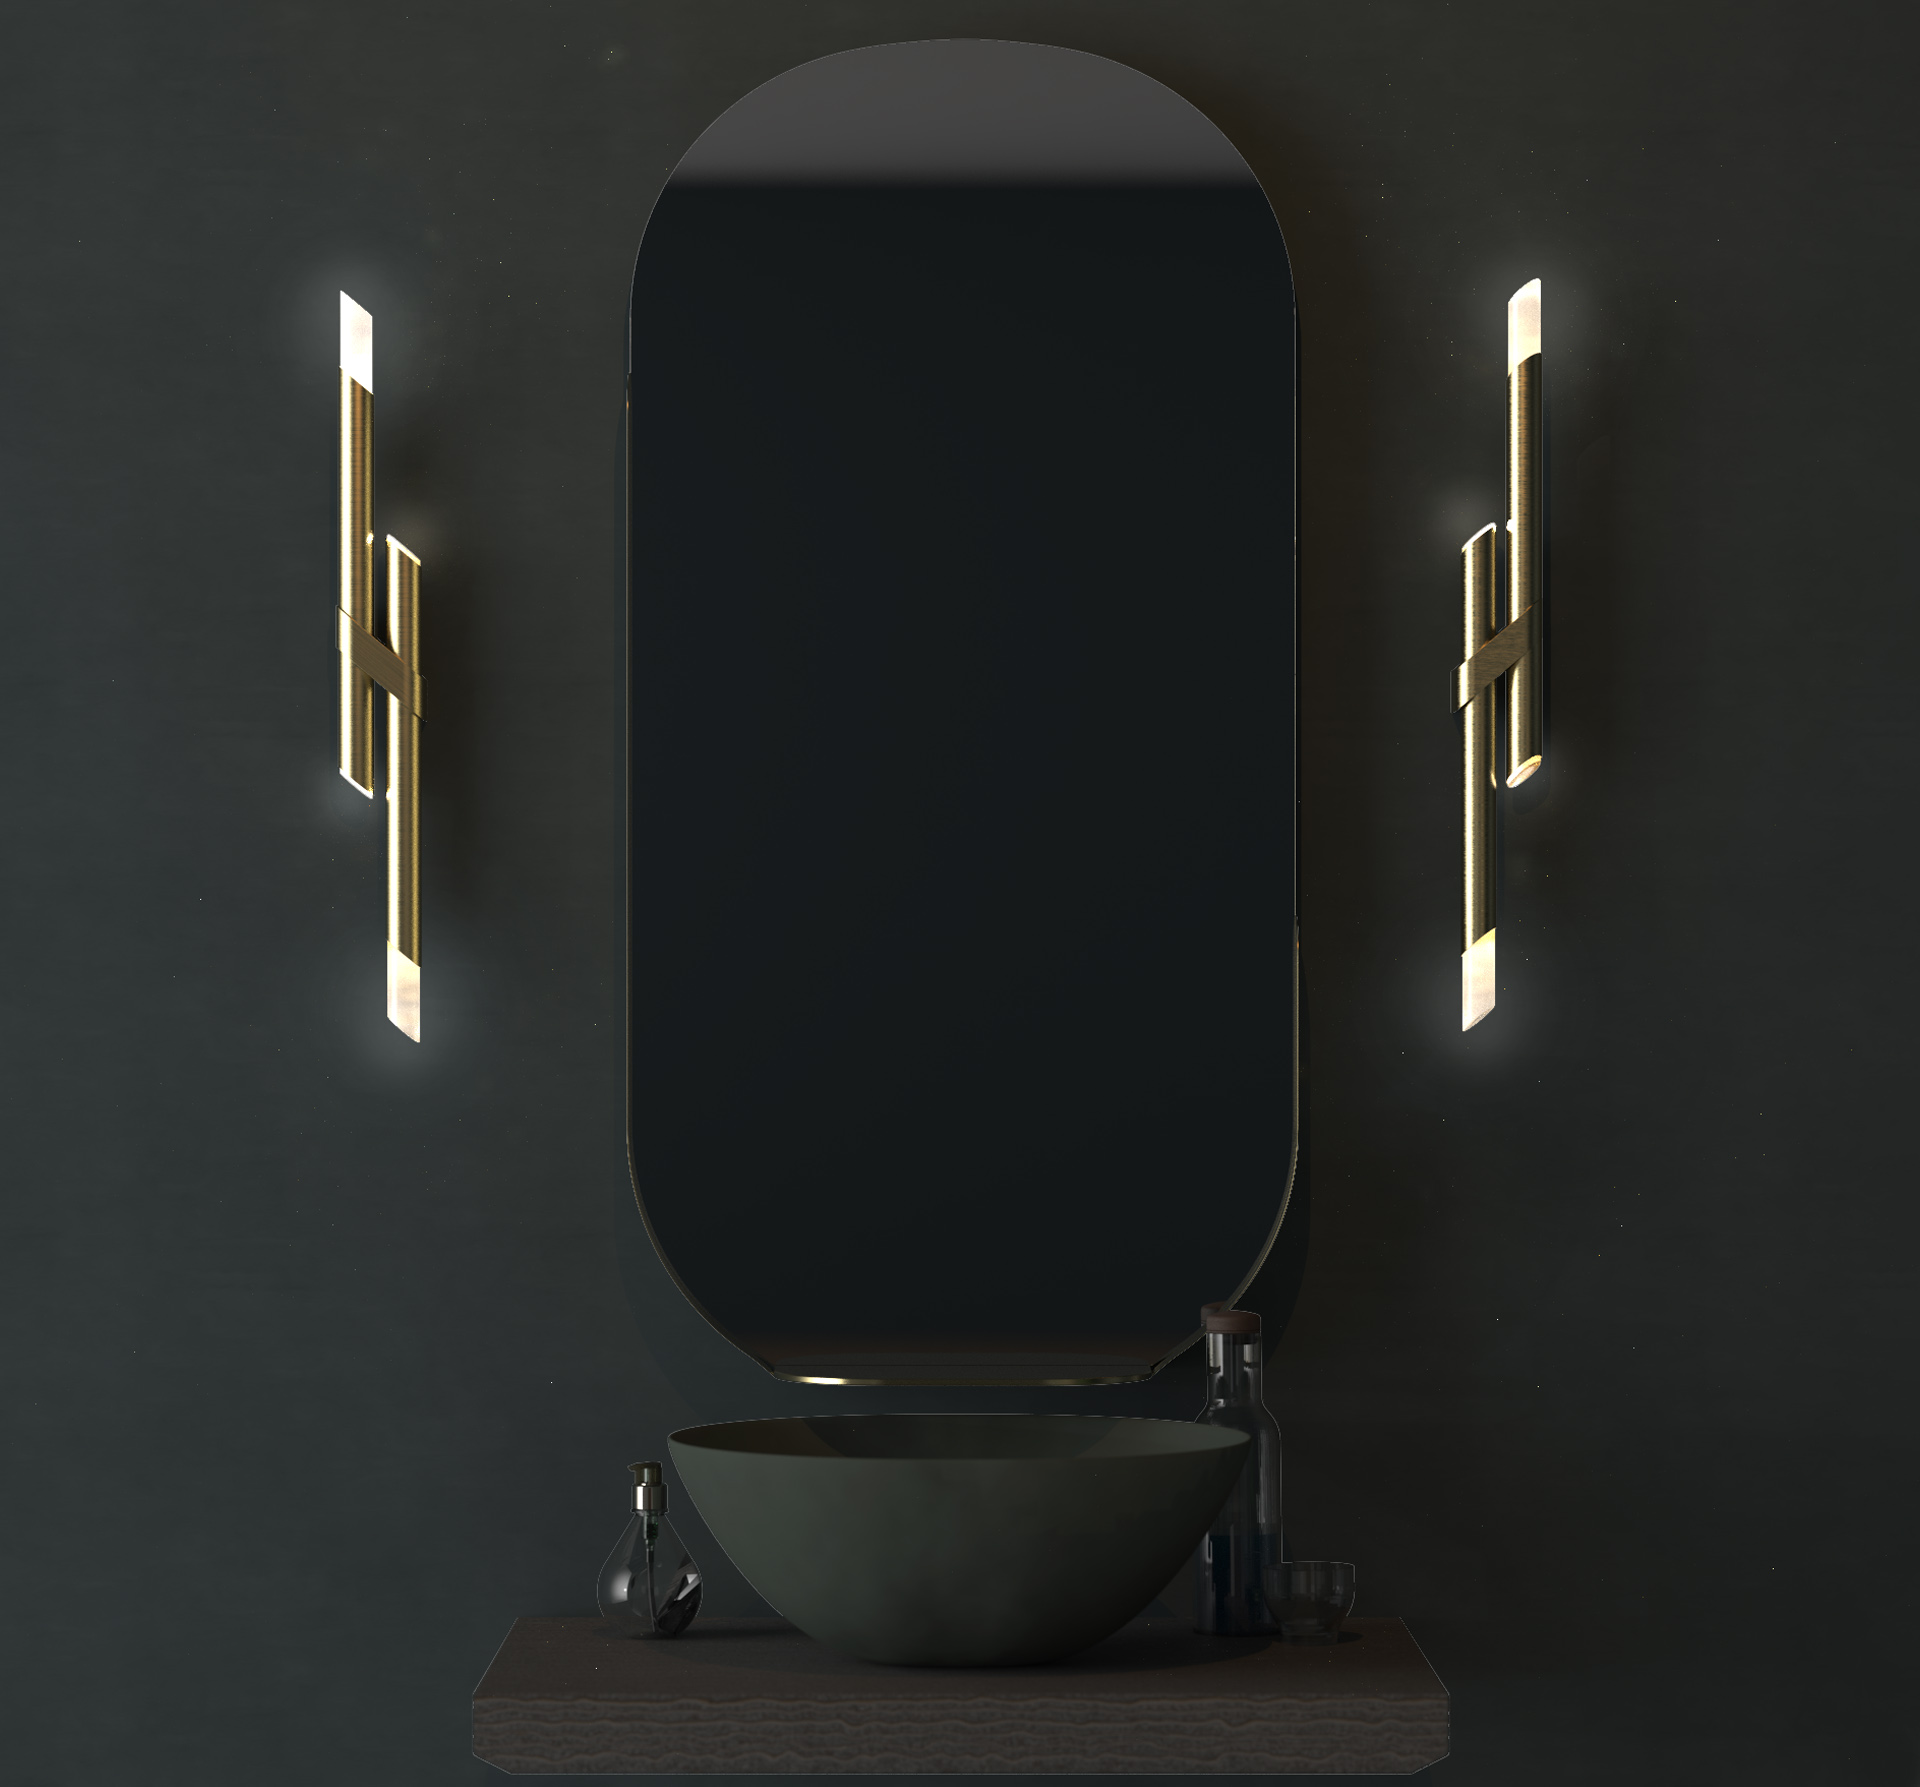 Contemporary Bathroom Wall Lights Brass Rods Illuminated Tips Mirror Dark Moody Interior Palette Designers Nulty Bespoke